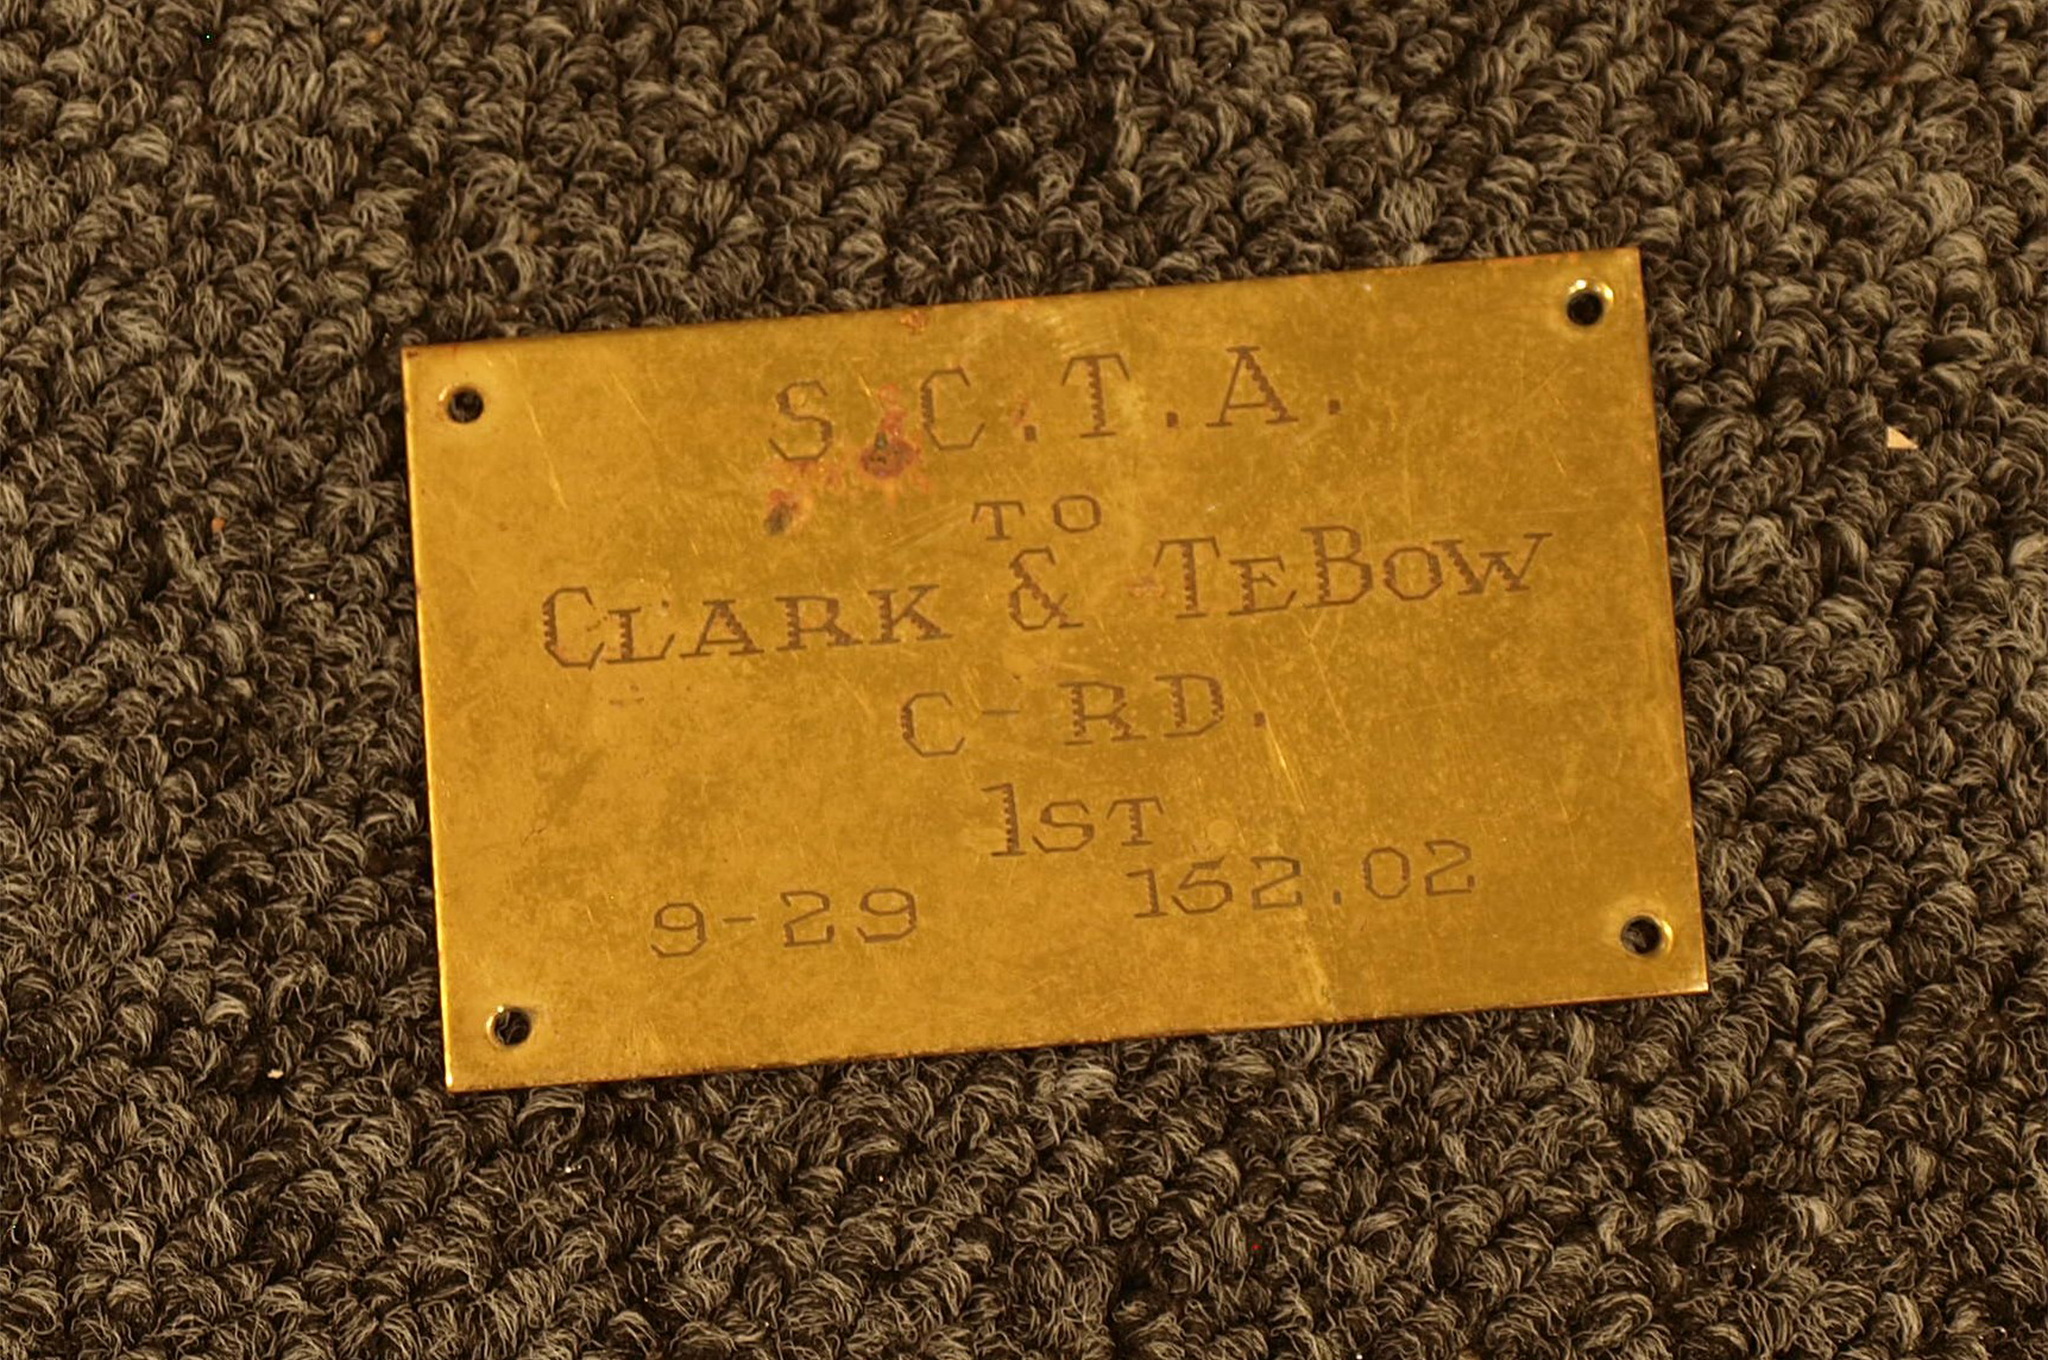 TeBow was crowding 100 mph in 1949 with homebrewed hot rods. This SCTA tag (showing no signs of ever being mounted) was found casually tossed into a drawer. Was TeBow embarrassed at missing the 100-mph mark by such a margin? Perhaps, but it's more likely that TeBow saw timing tags as bragging.